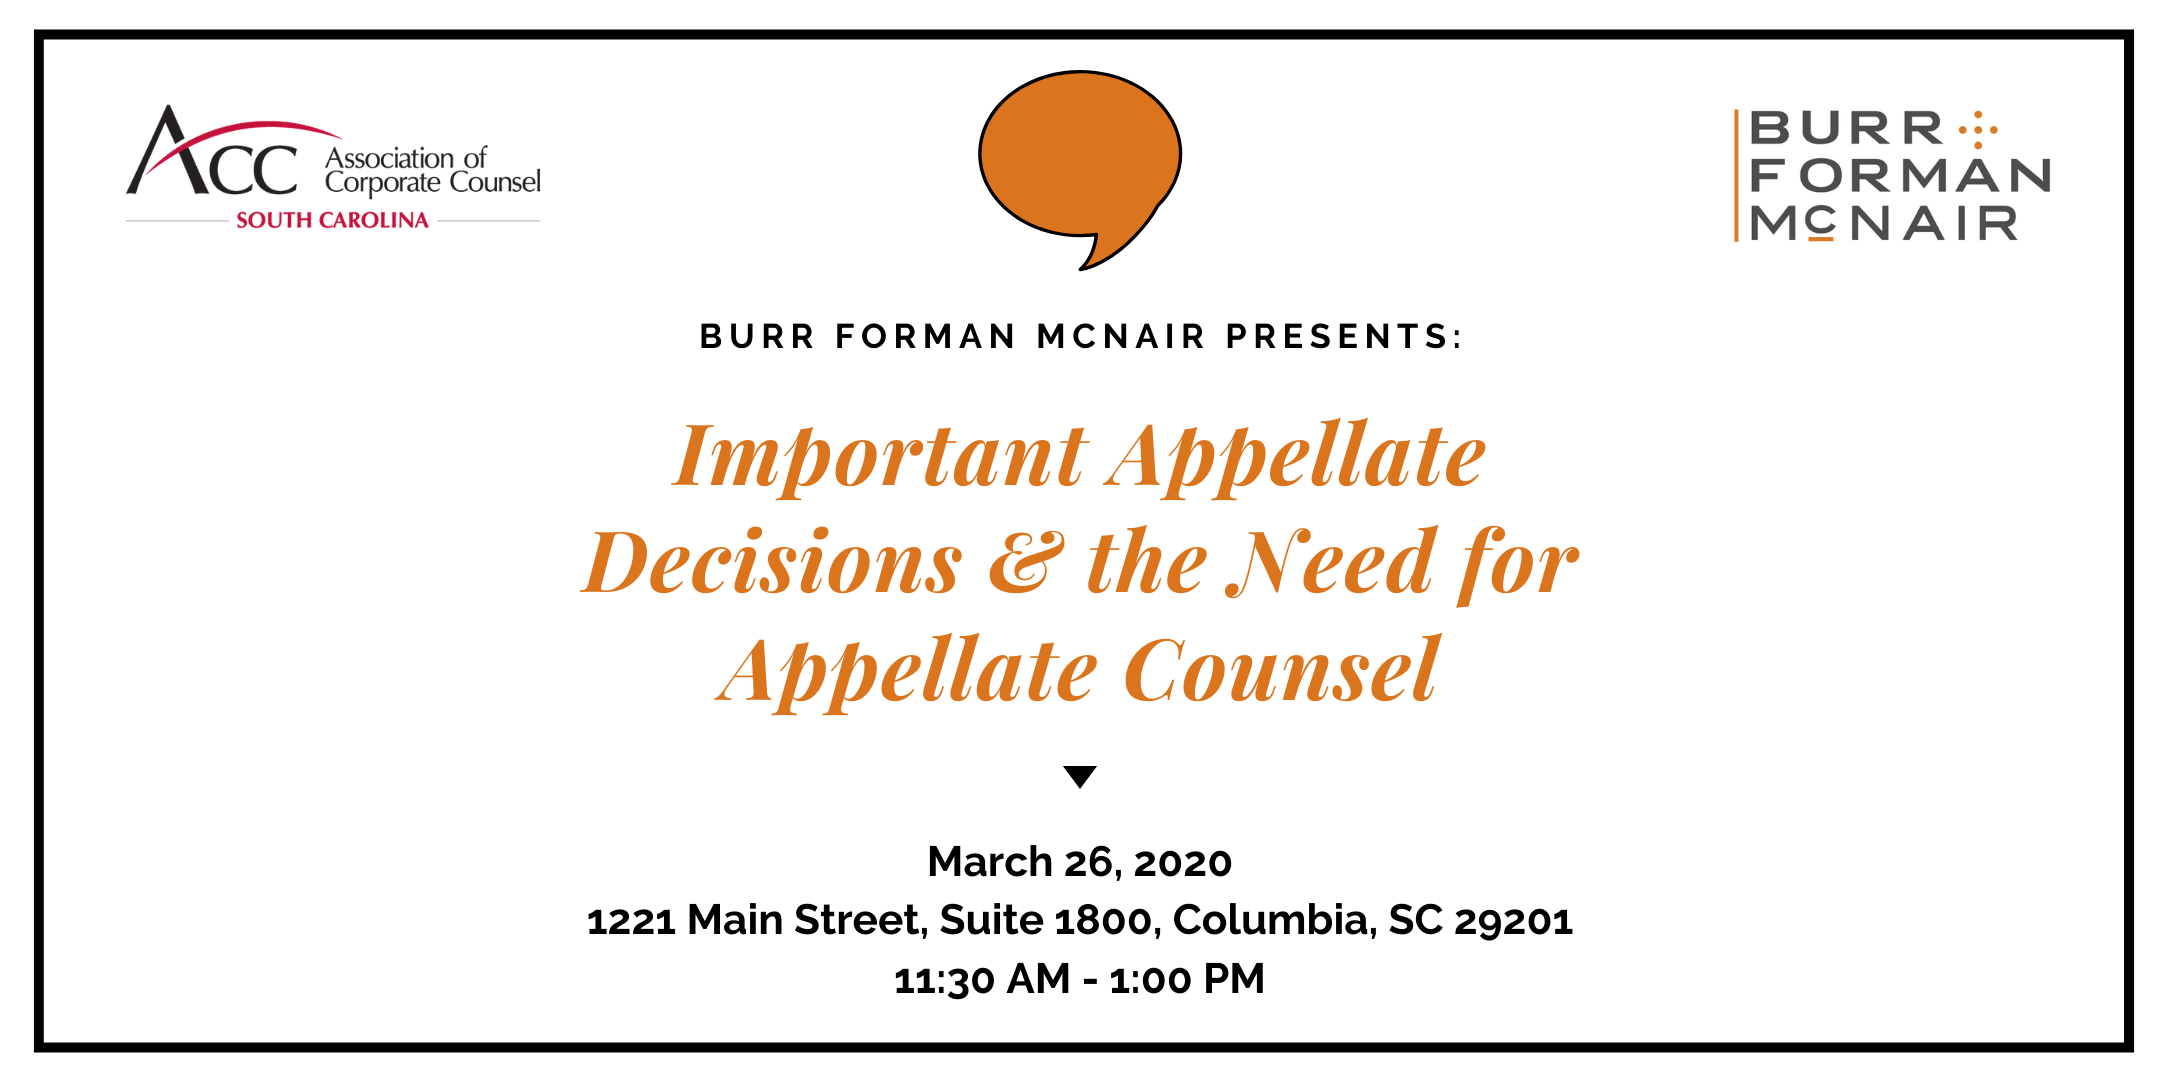 Important Appellate Decisions & the Need for Appellate Counsel